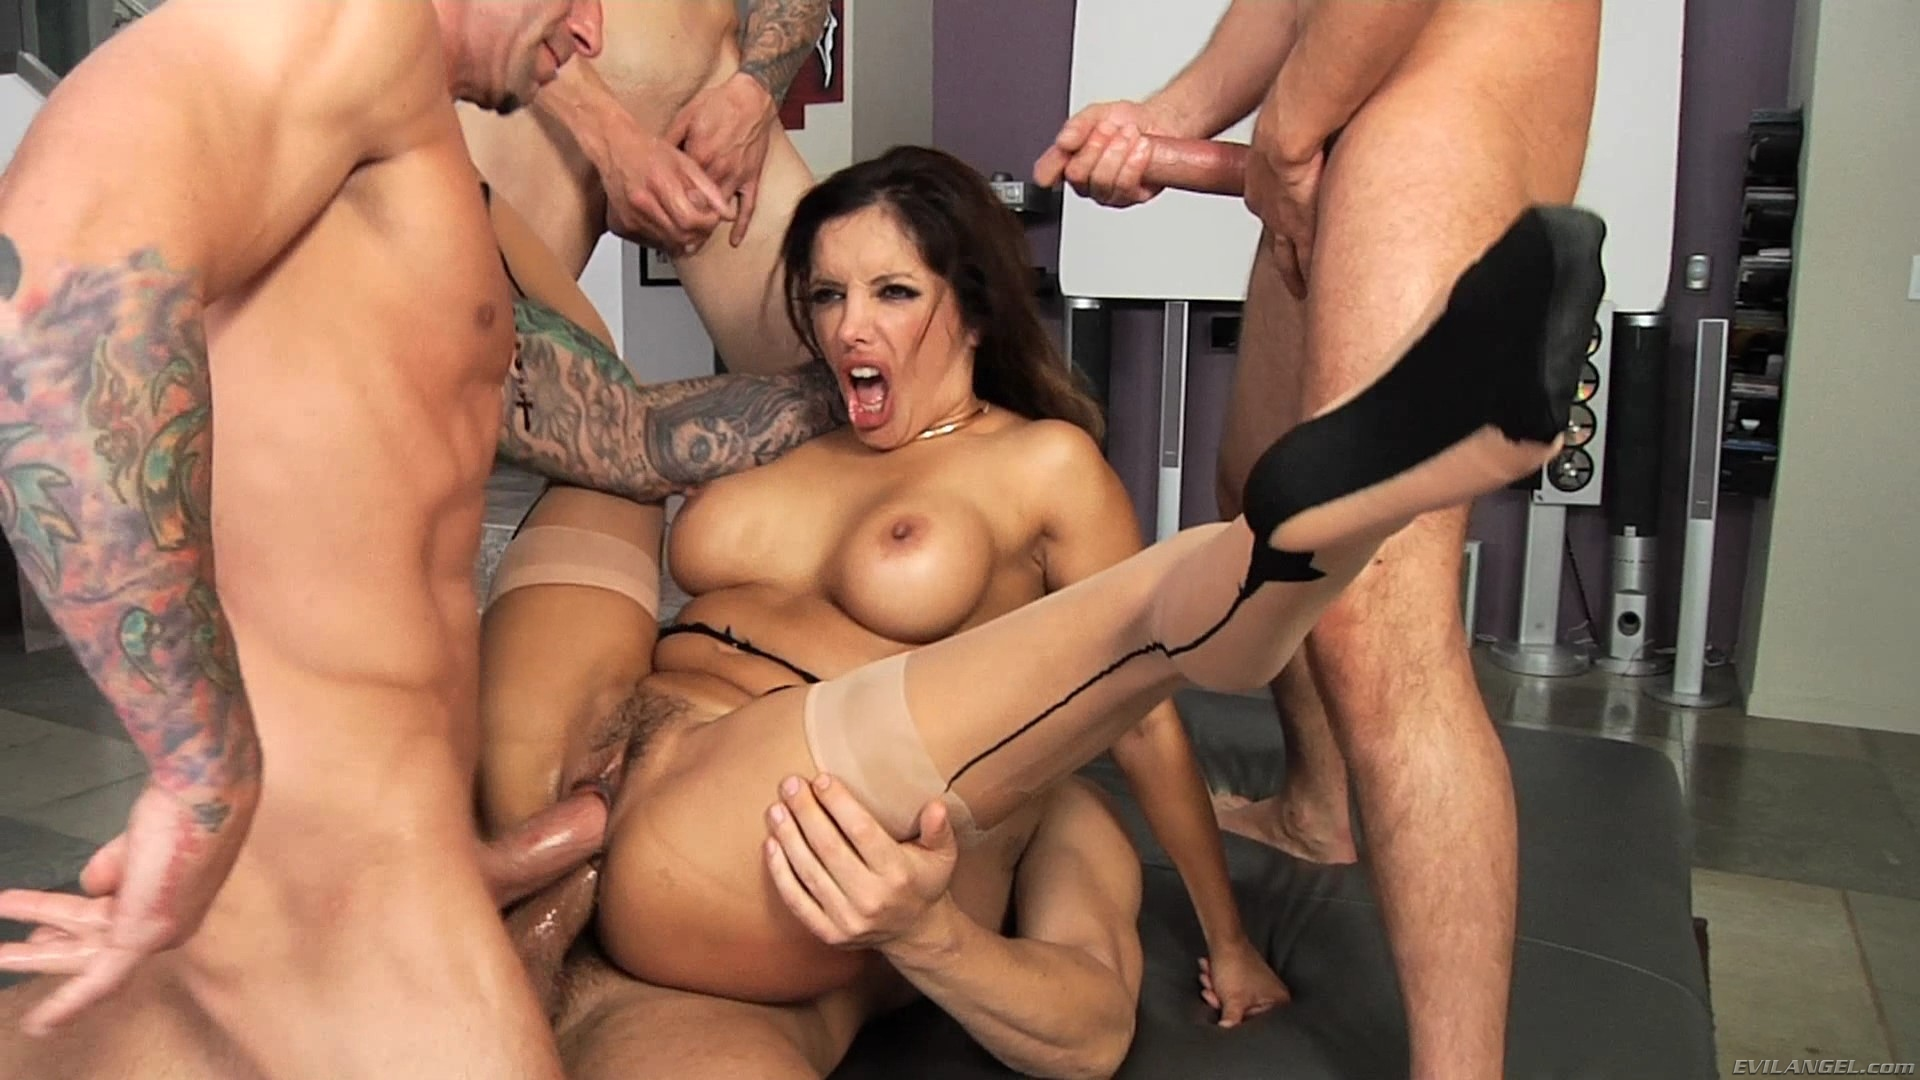 Anal acrobats 6 dvd preview - 1 part 7